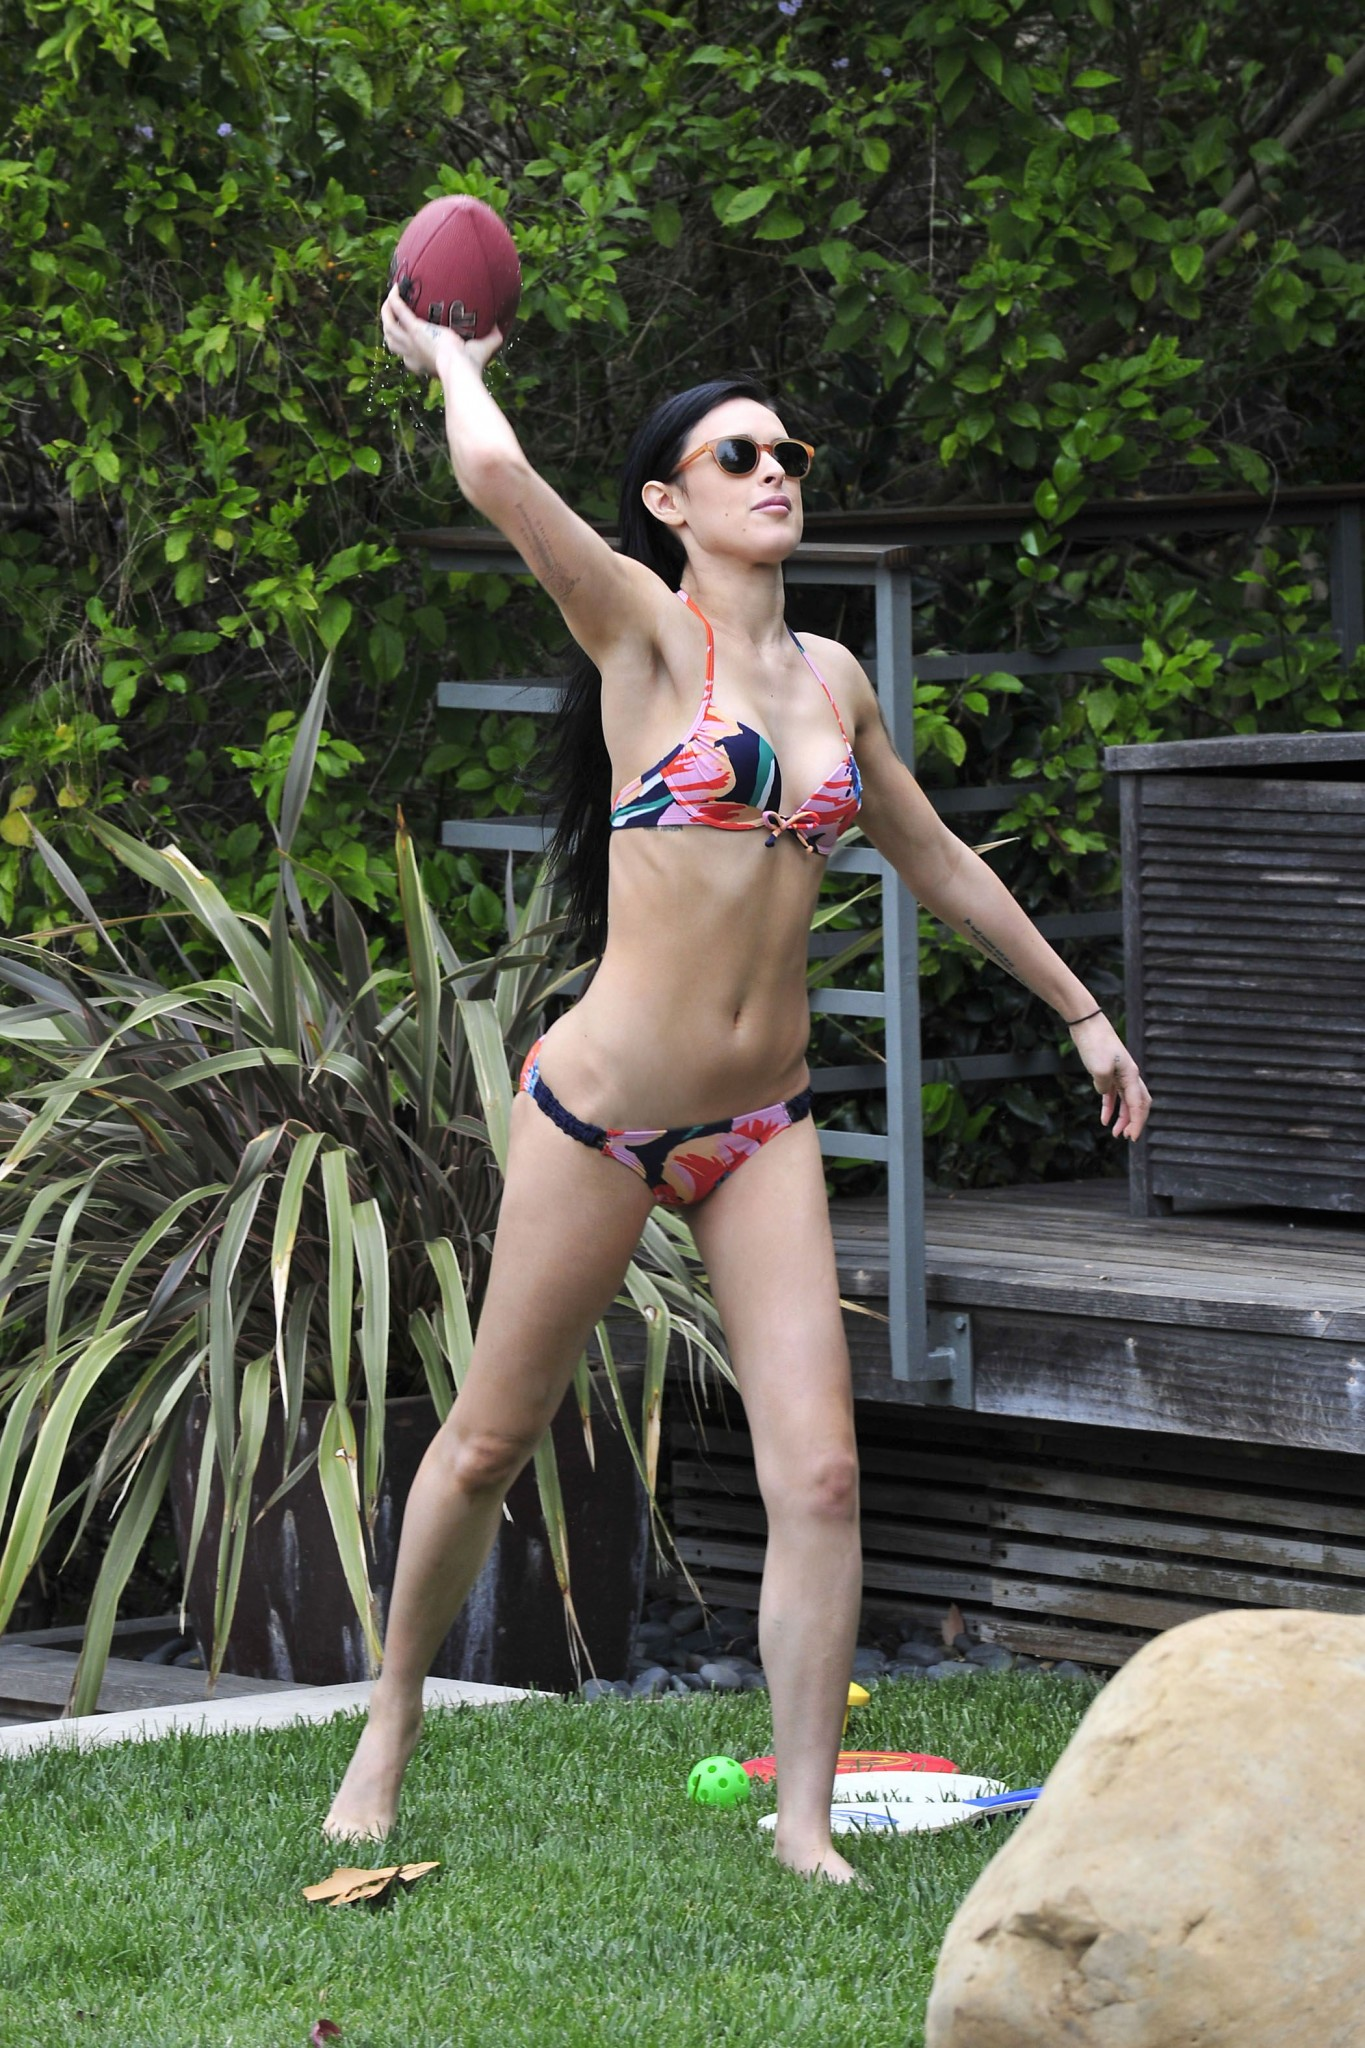 rumer-willis-bikini-candid-photoshoot-4